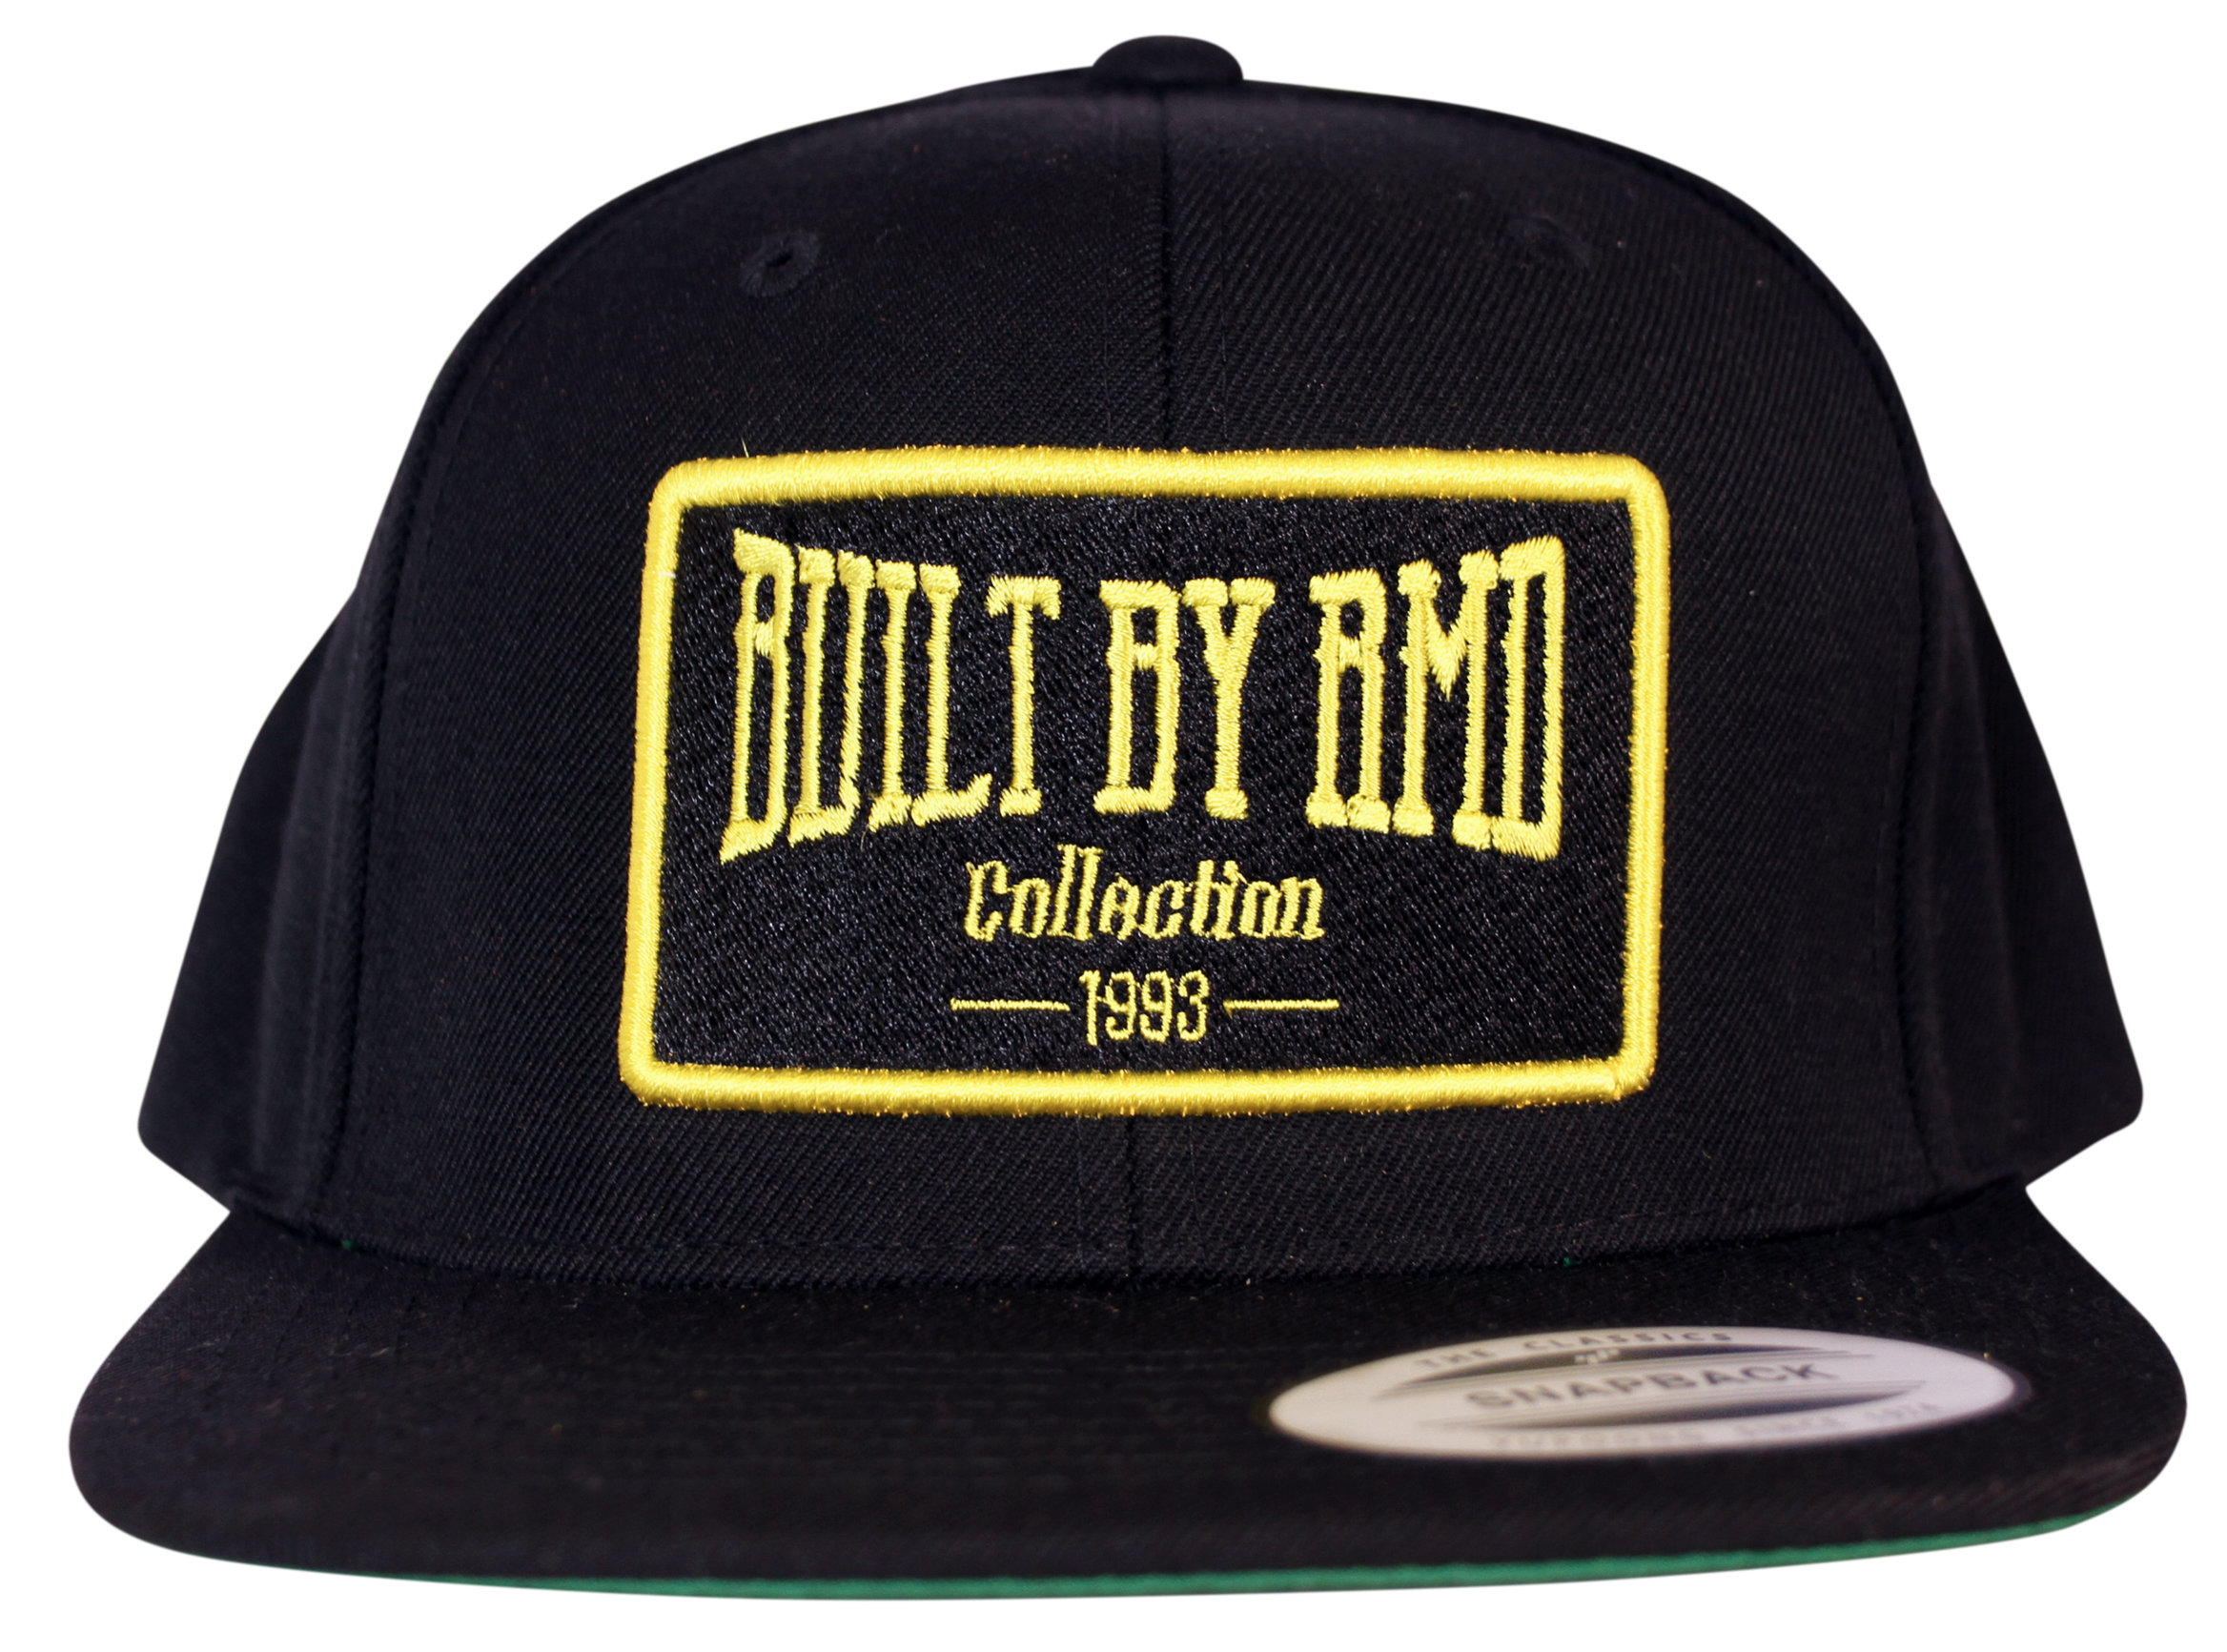 Built By RMD Yellow on Black Snap Back